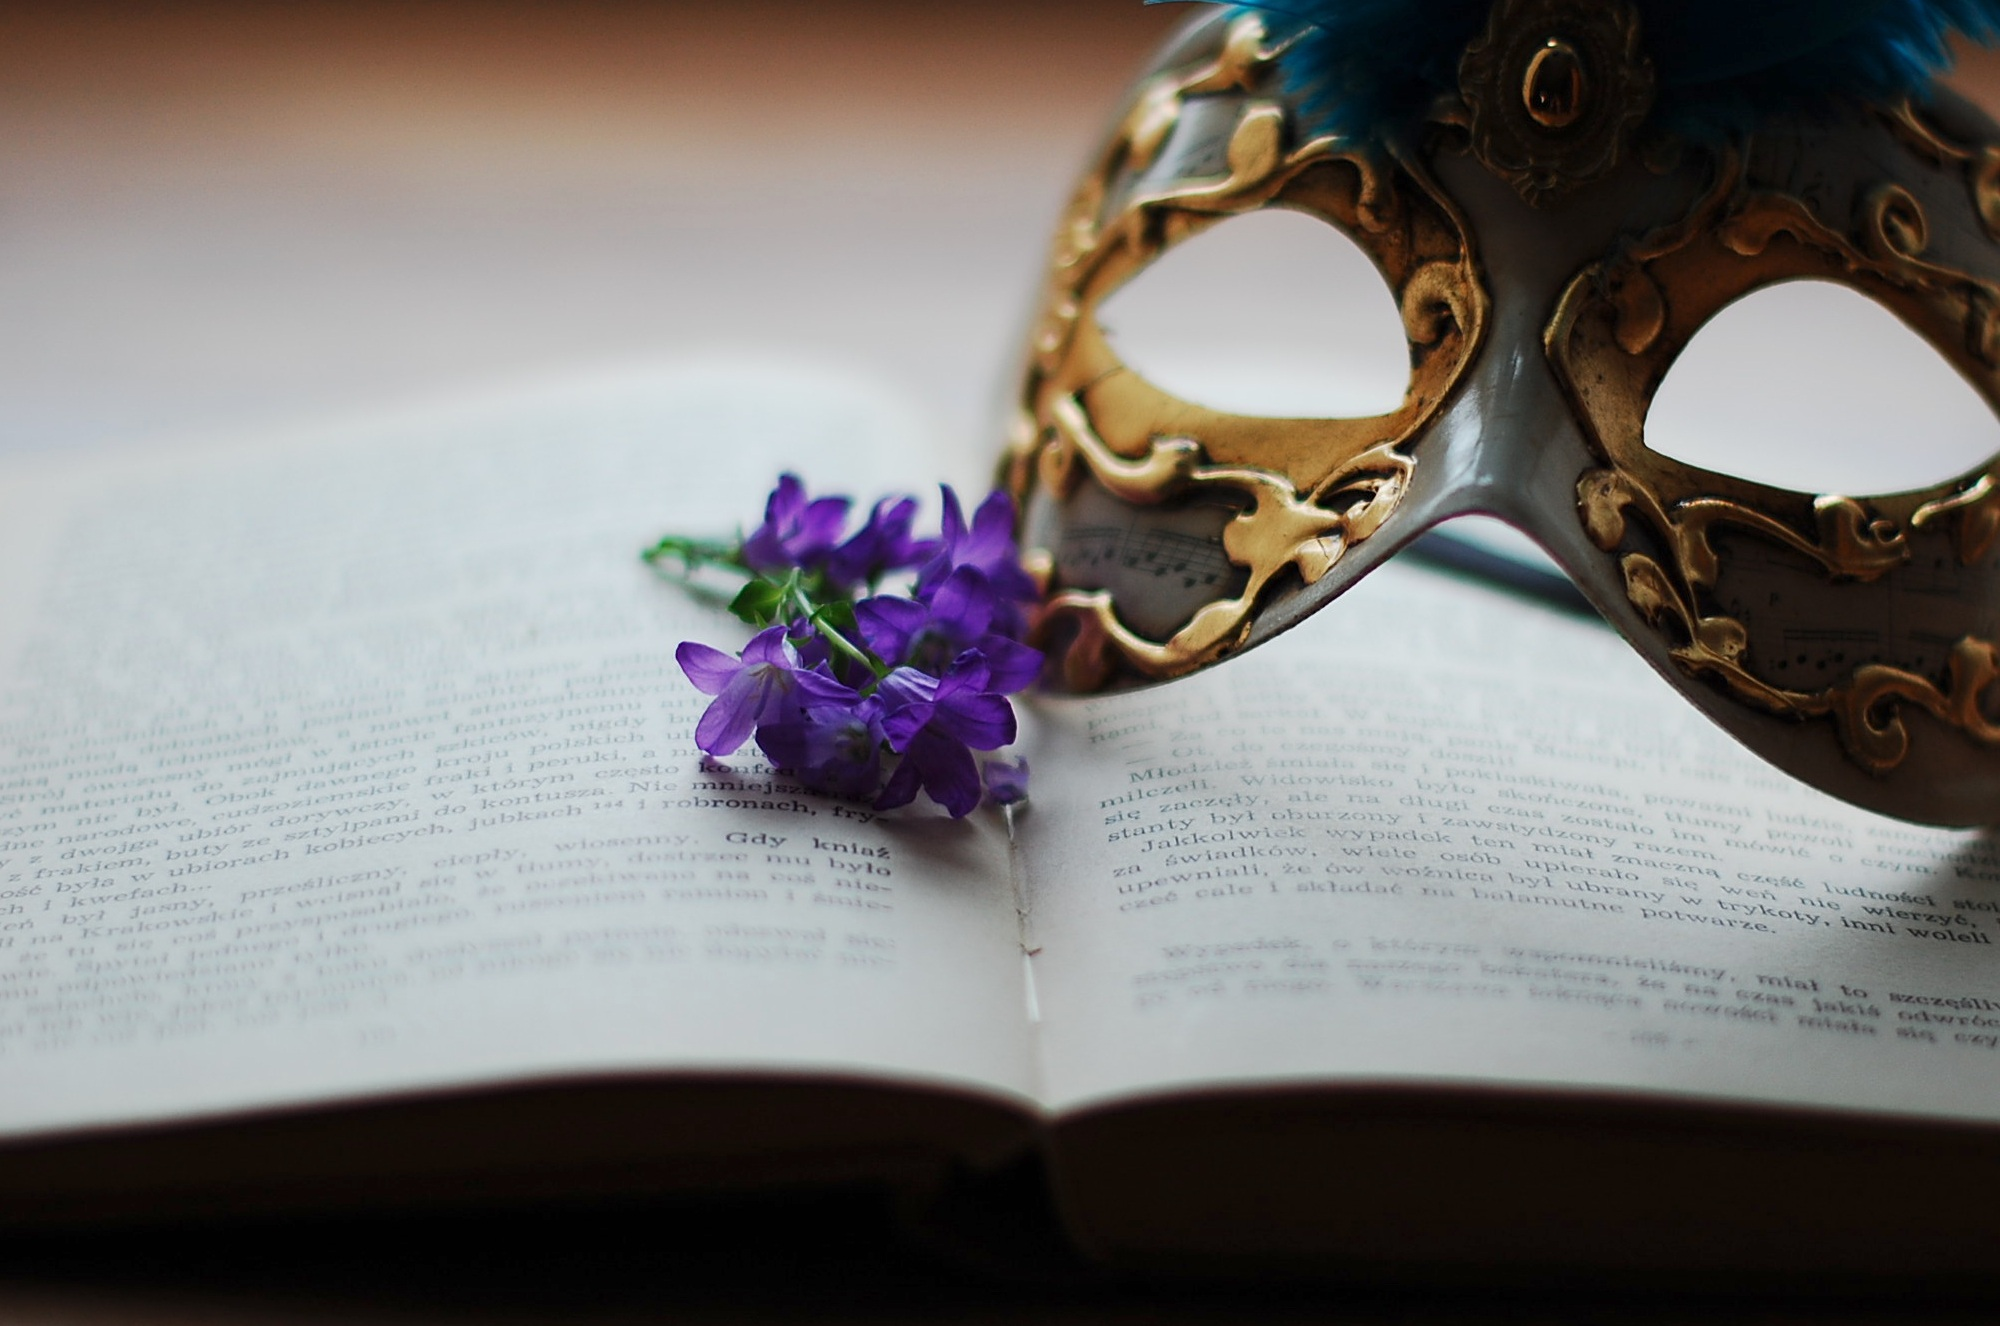 Book, flowers, mask